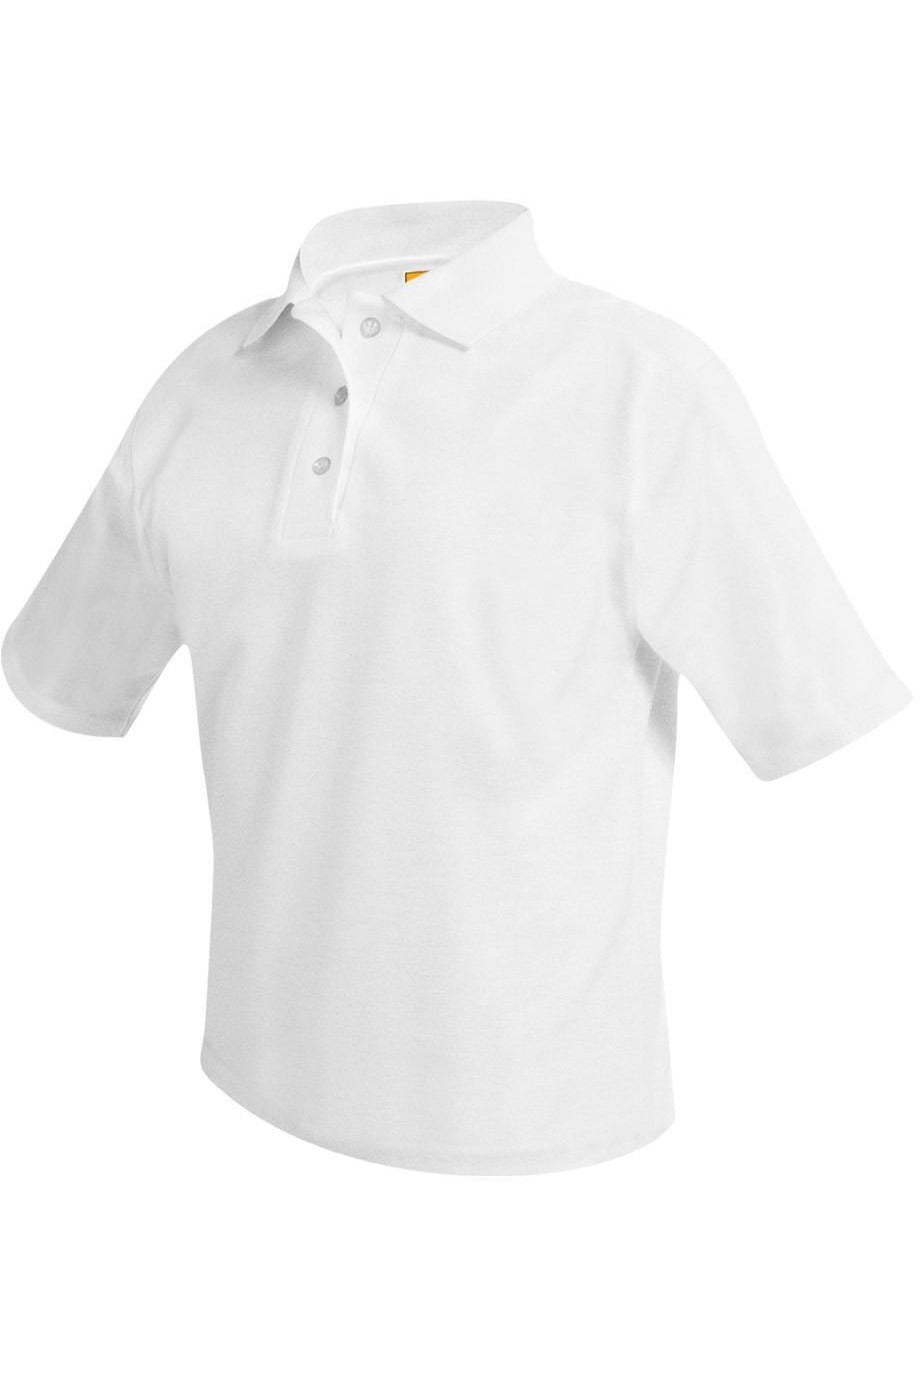 Polo Shirt - RC Uniforms